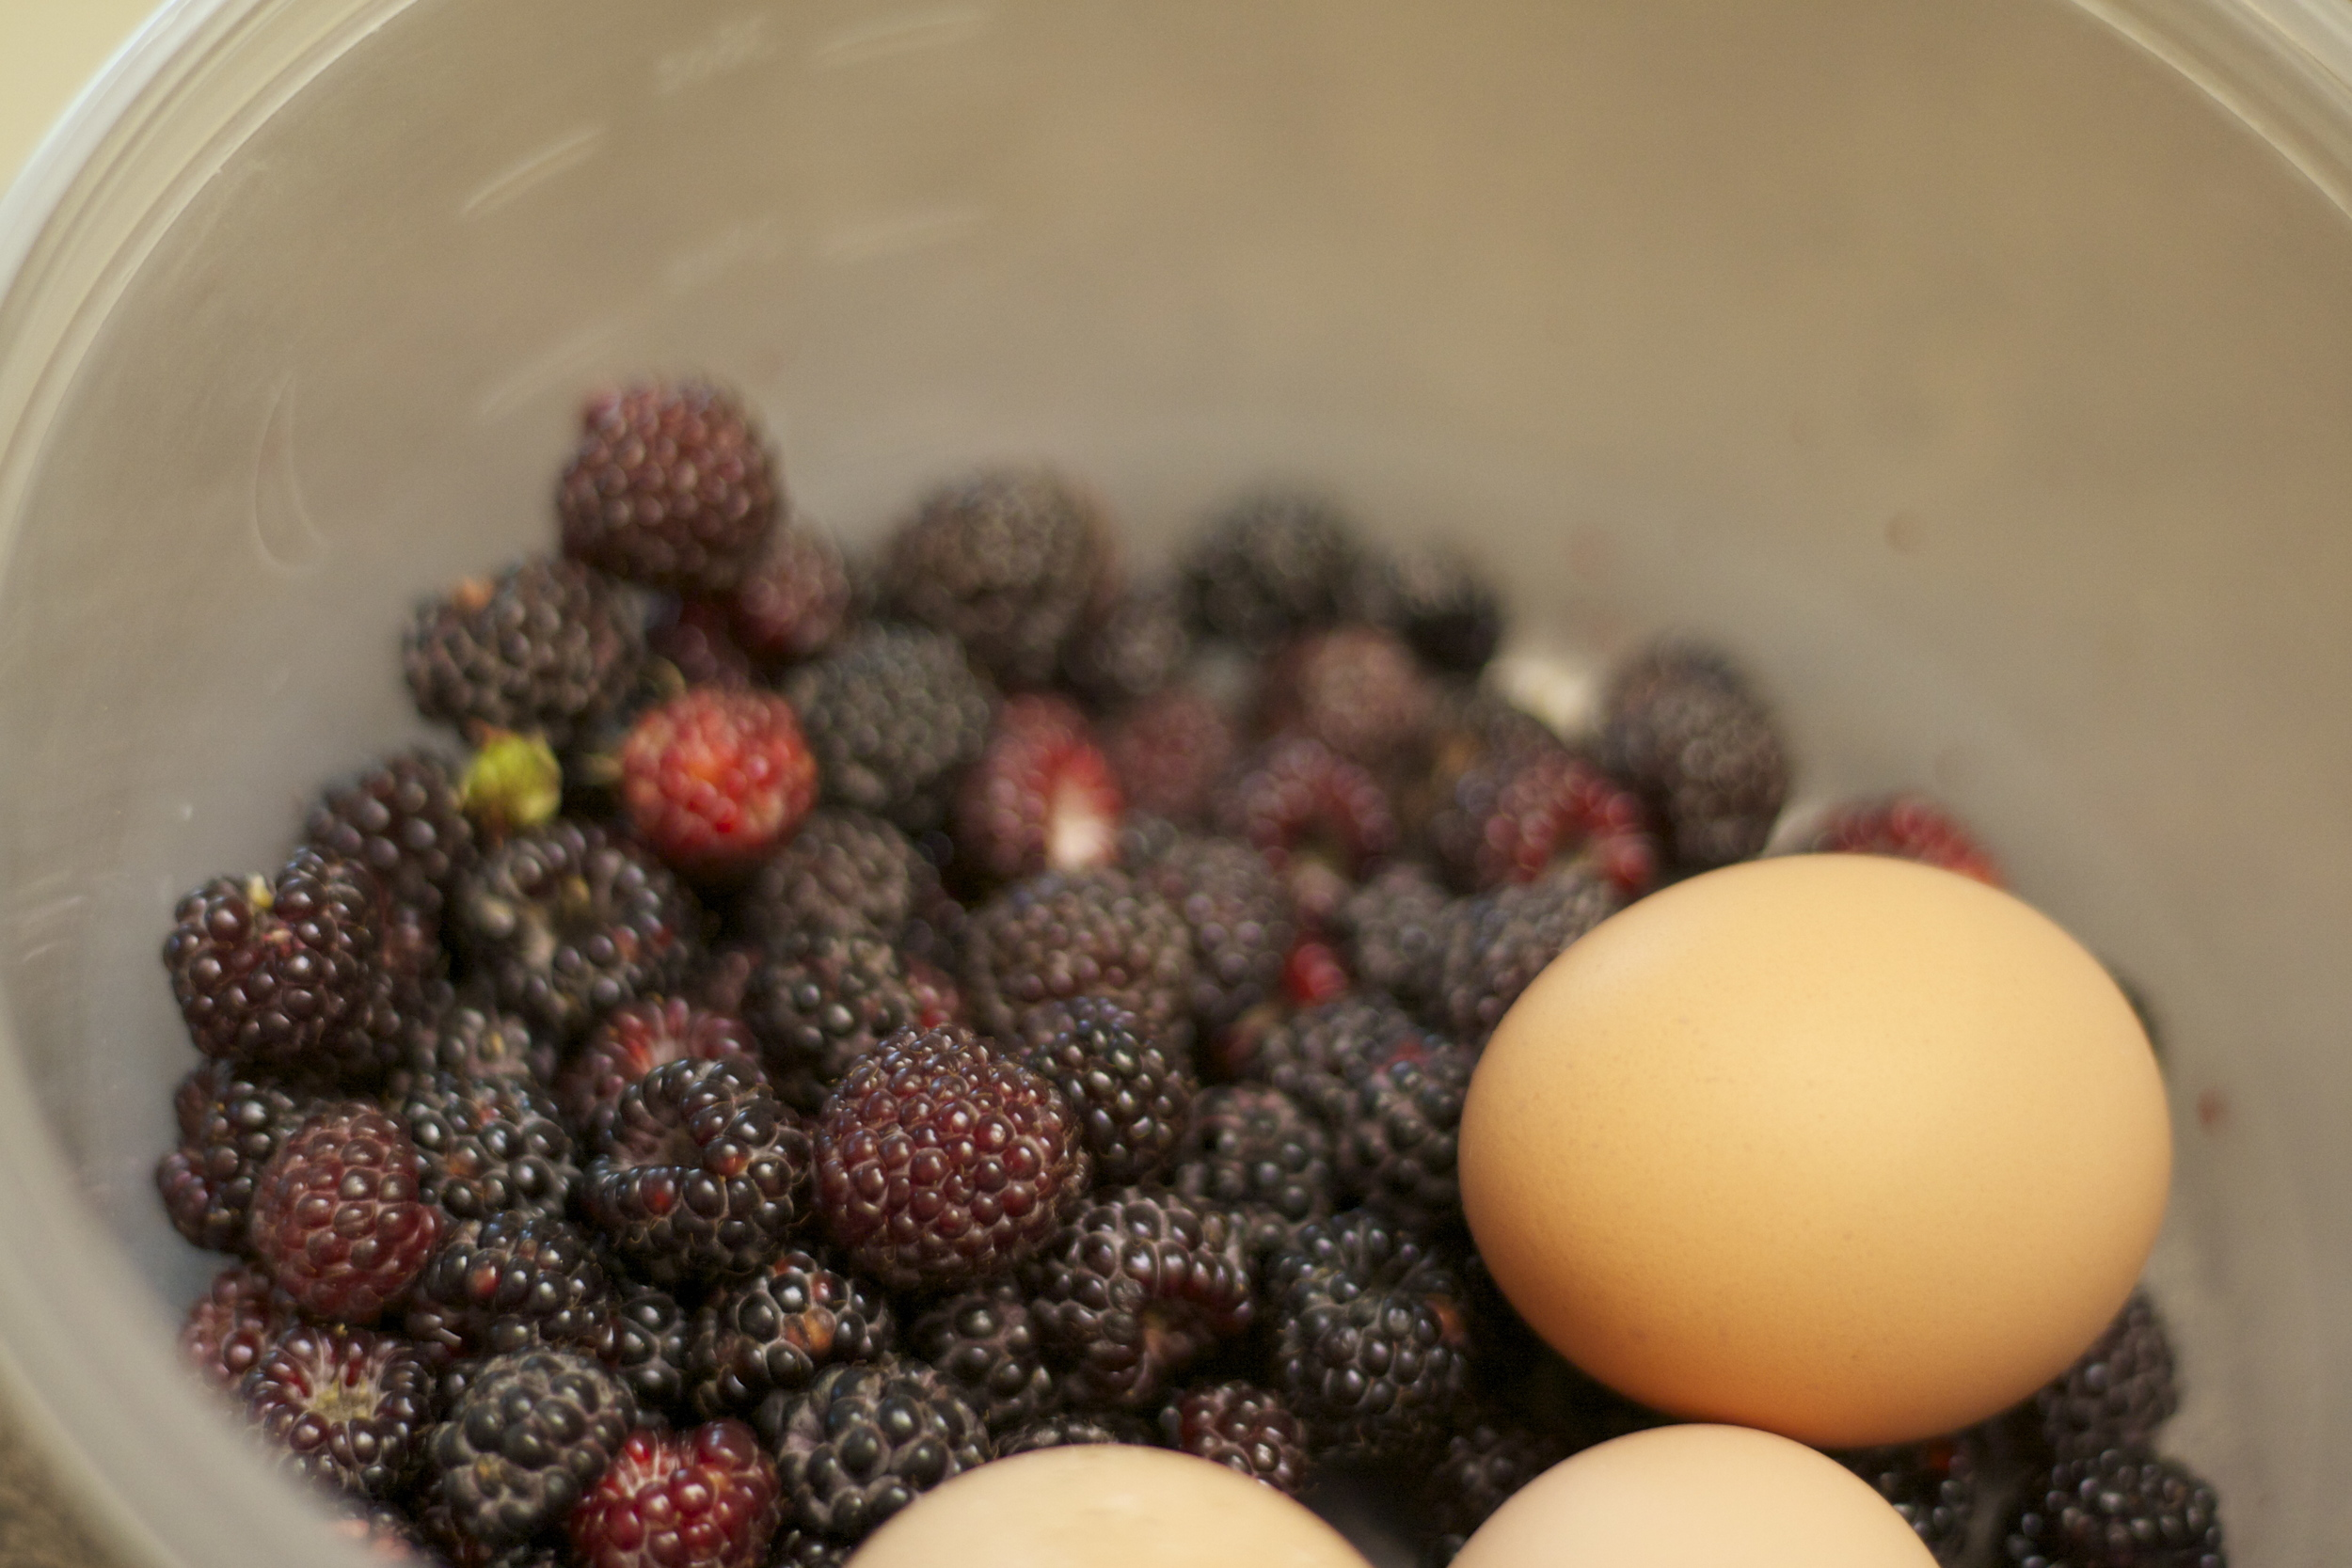 Fresh blackberries and eggs!